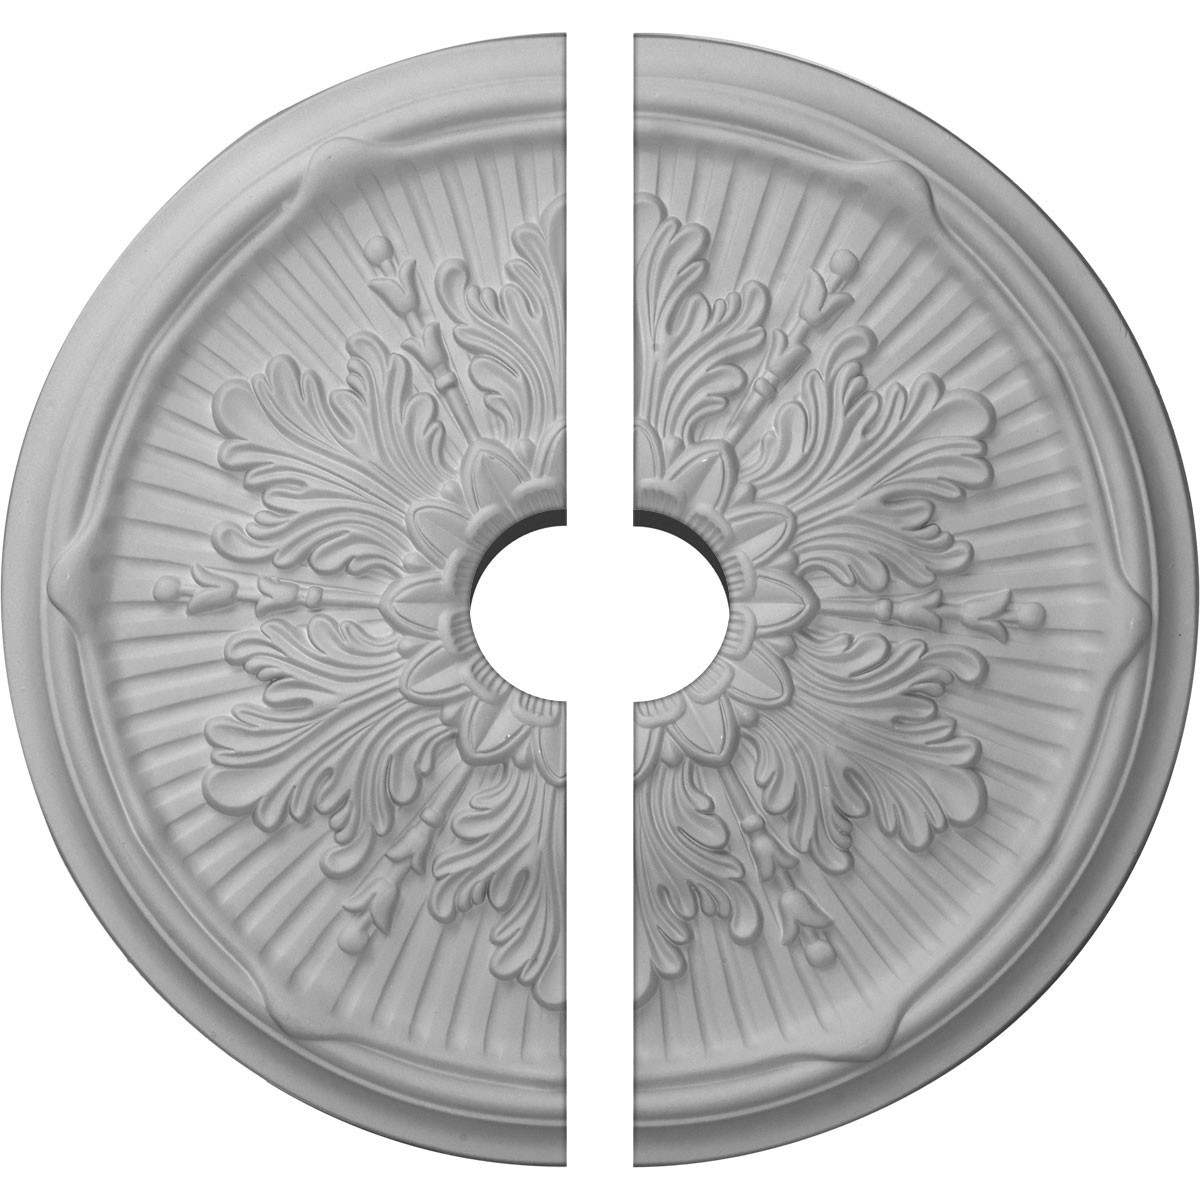 """EM-CM21LU2-03500 - 21""""OD x 3 1/2""""ID x 2""""P Luton Ceiling Medallion, Two Piece (Fits Canopies up to 3 1/2"""")"""